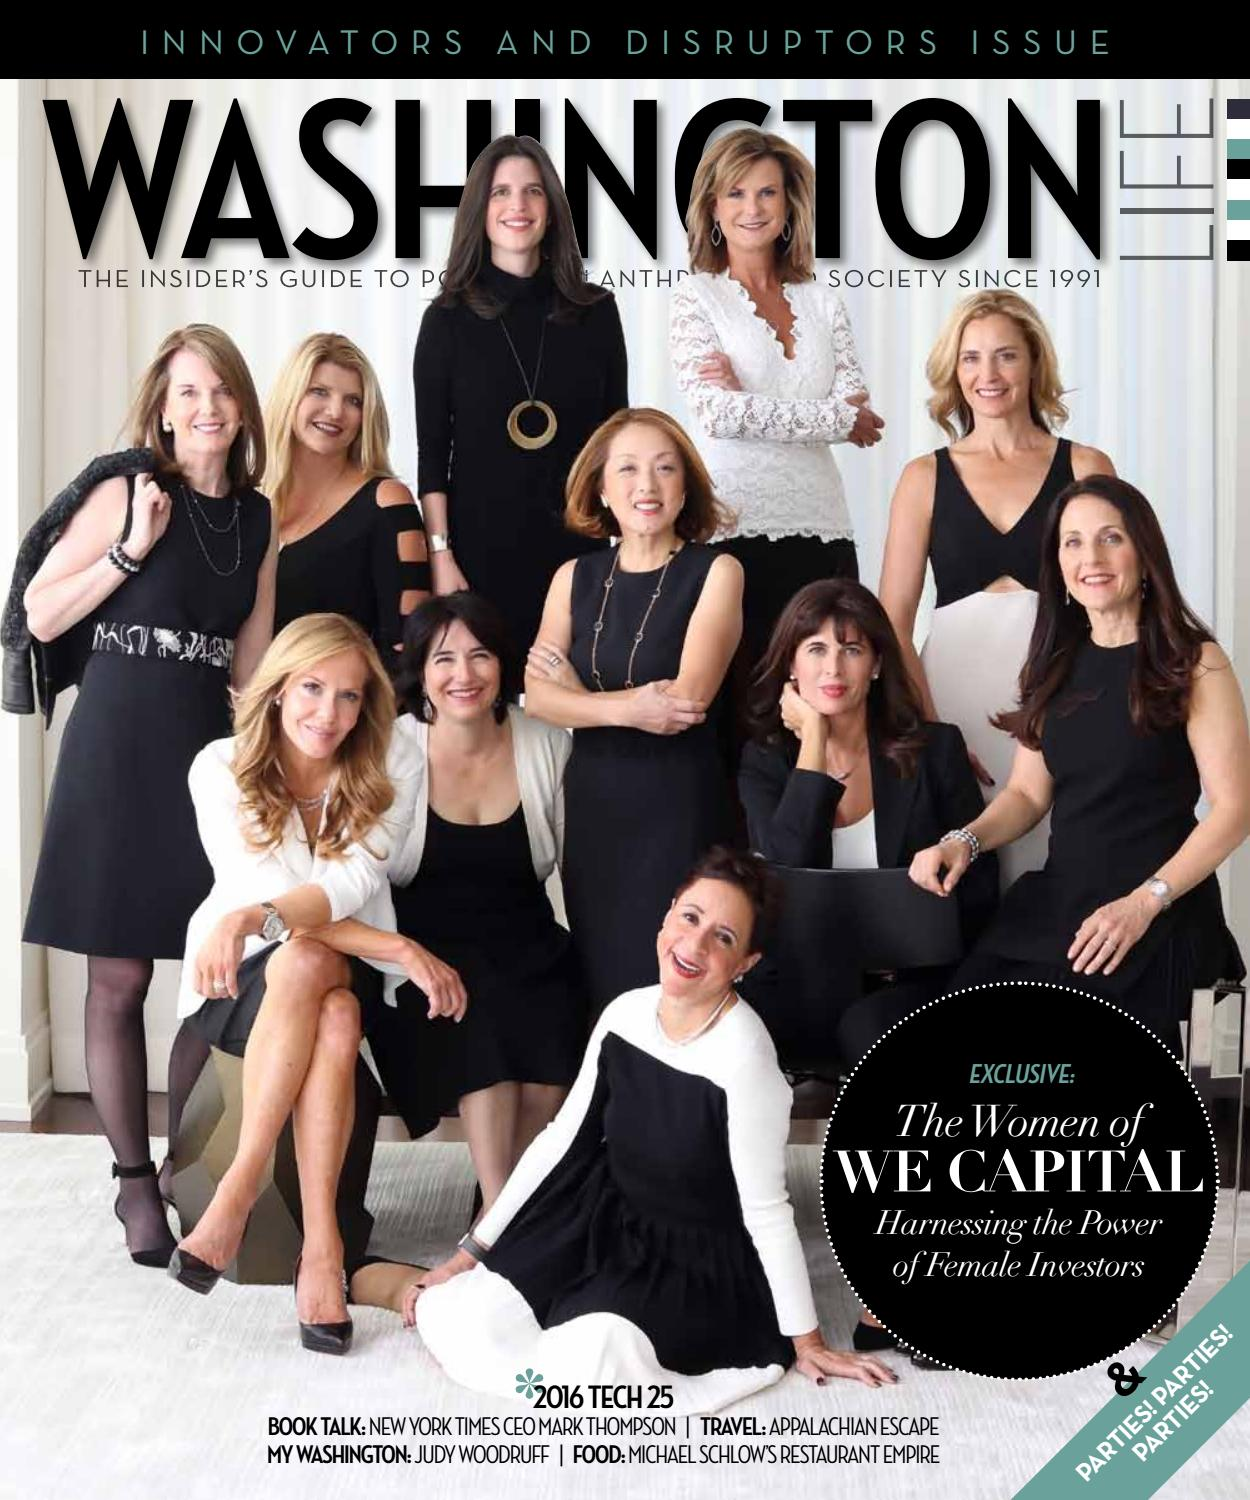 Washington life magazine   june 2007 by washington life magazine ...